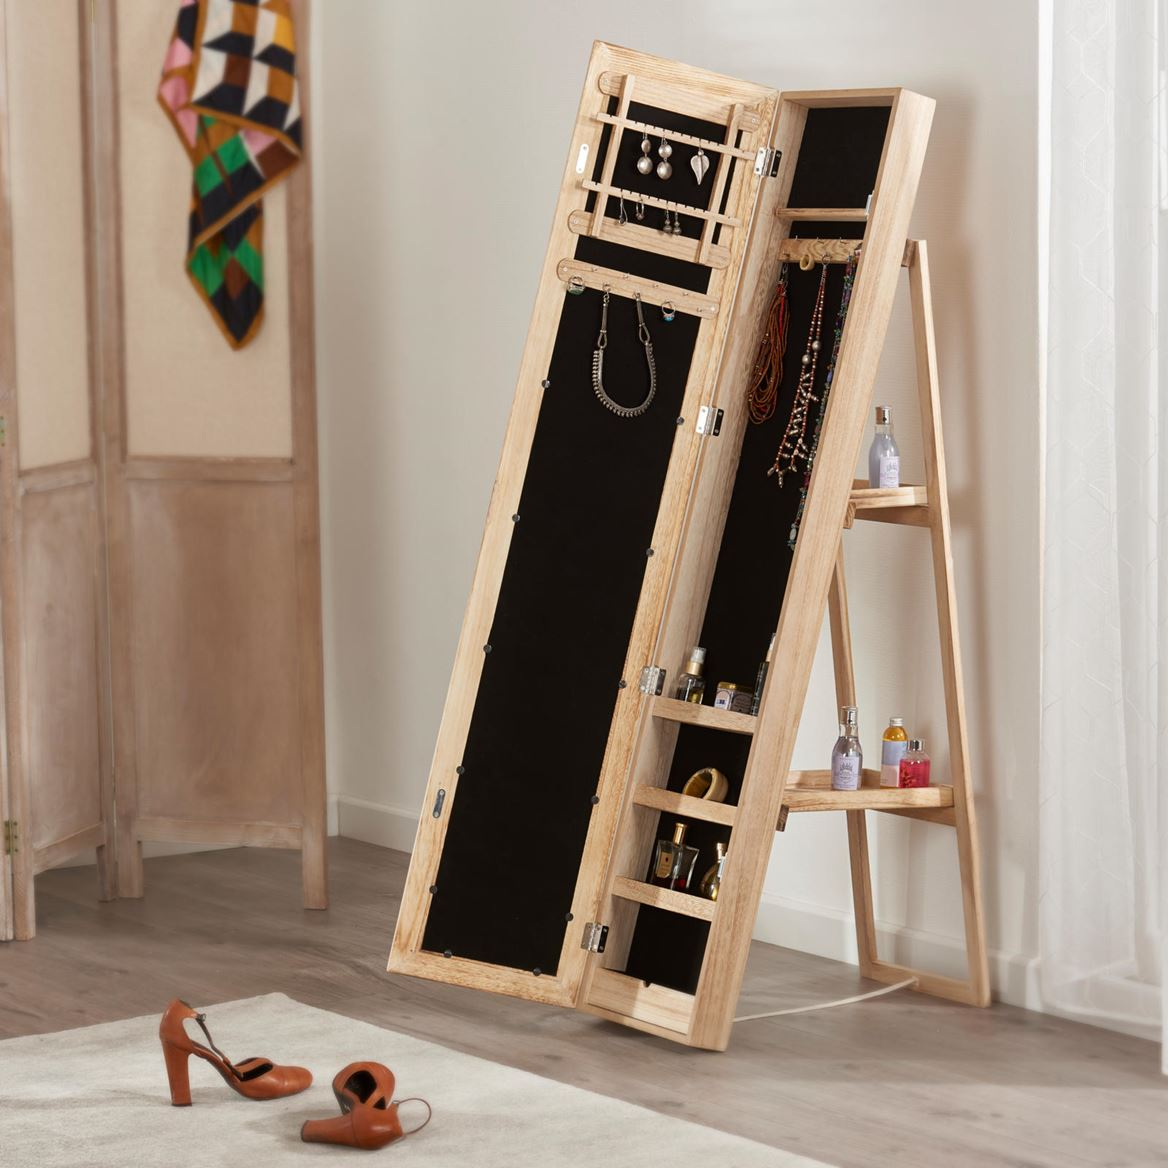 alexia armoire bijoux avec miroir naturel h 139 x larg. Black Bedroom Furniture Sets. Home Design Ideas